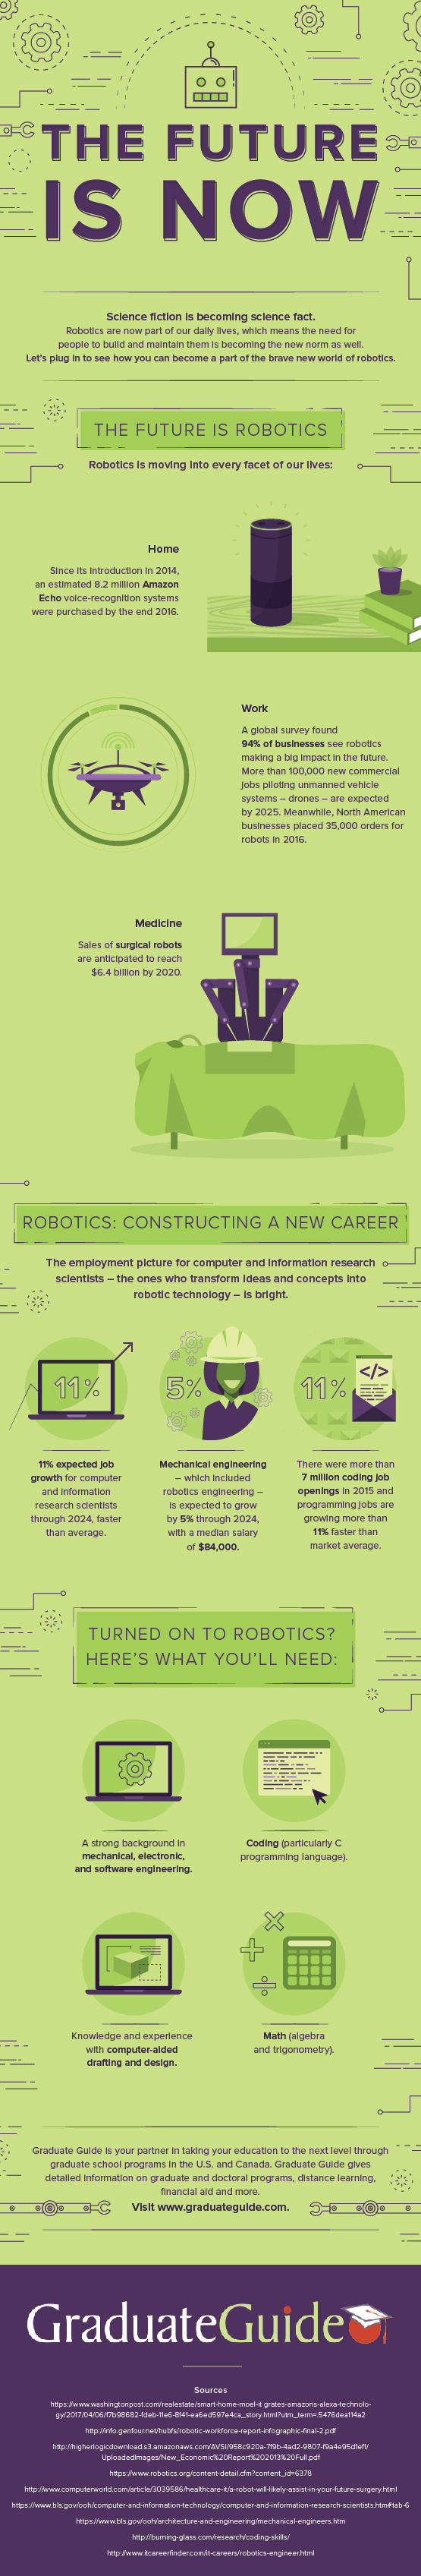 Career guide: Robotics engineer